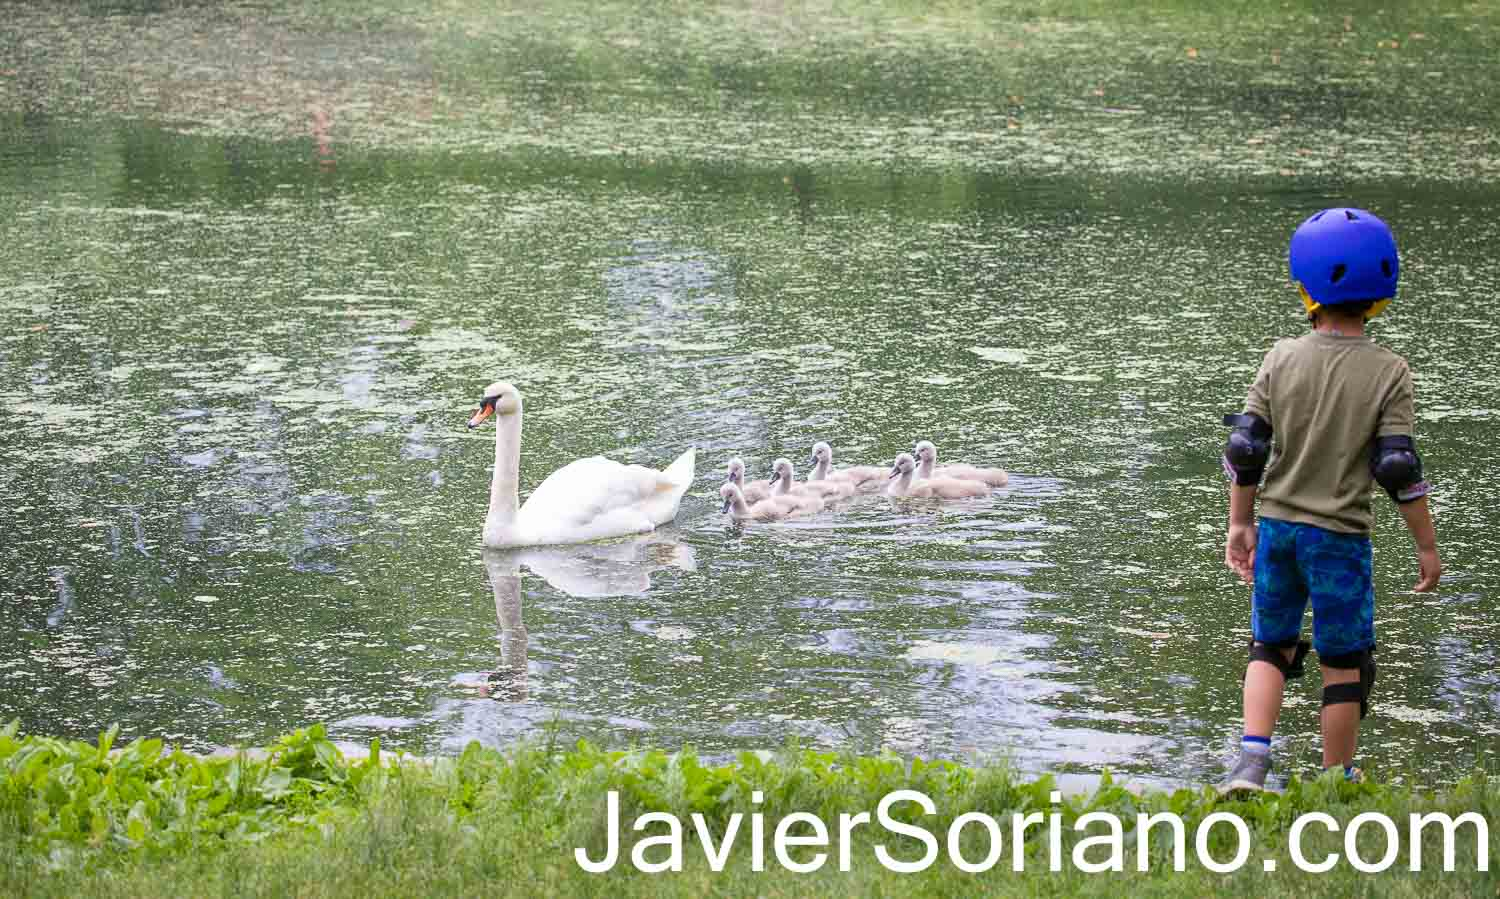 Wednesday, June 2, 2021. Prospect Park, Brooklyn; New York City – Mother swan with her 6 babies (cygnets) and a boy watching them.   Photo by Javier Soriano/www.JavierSoriano.com